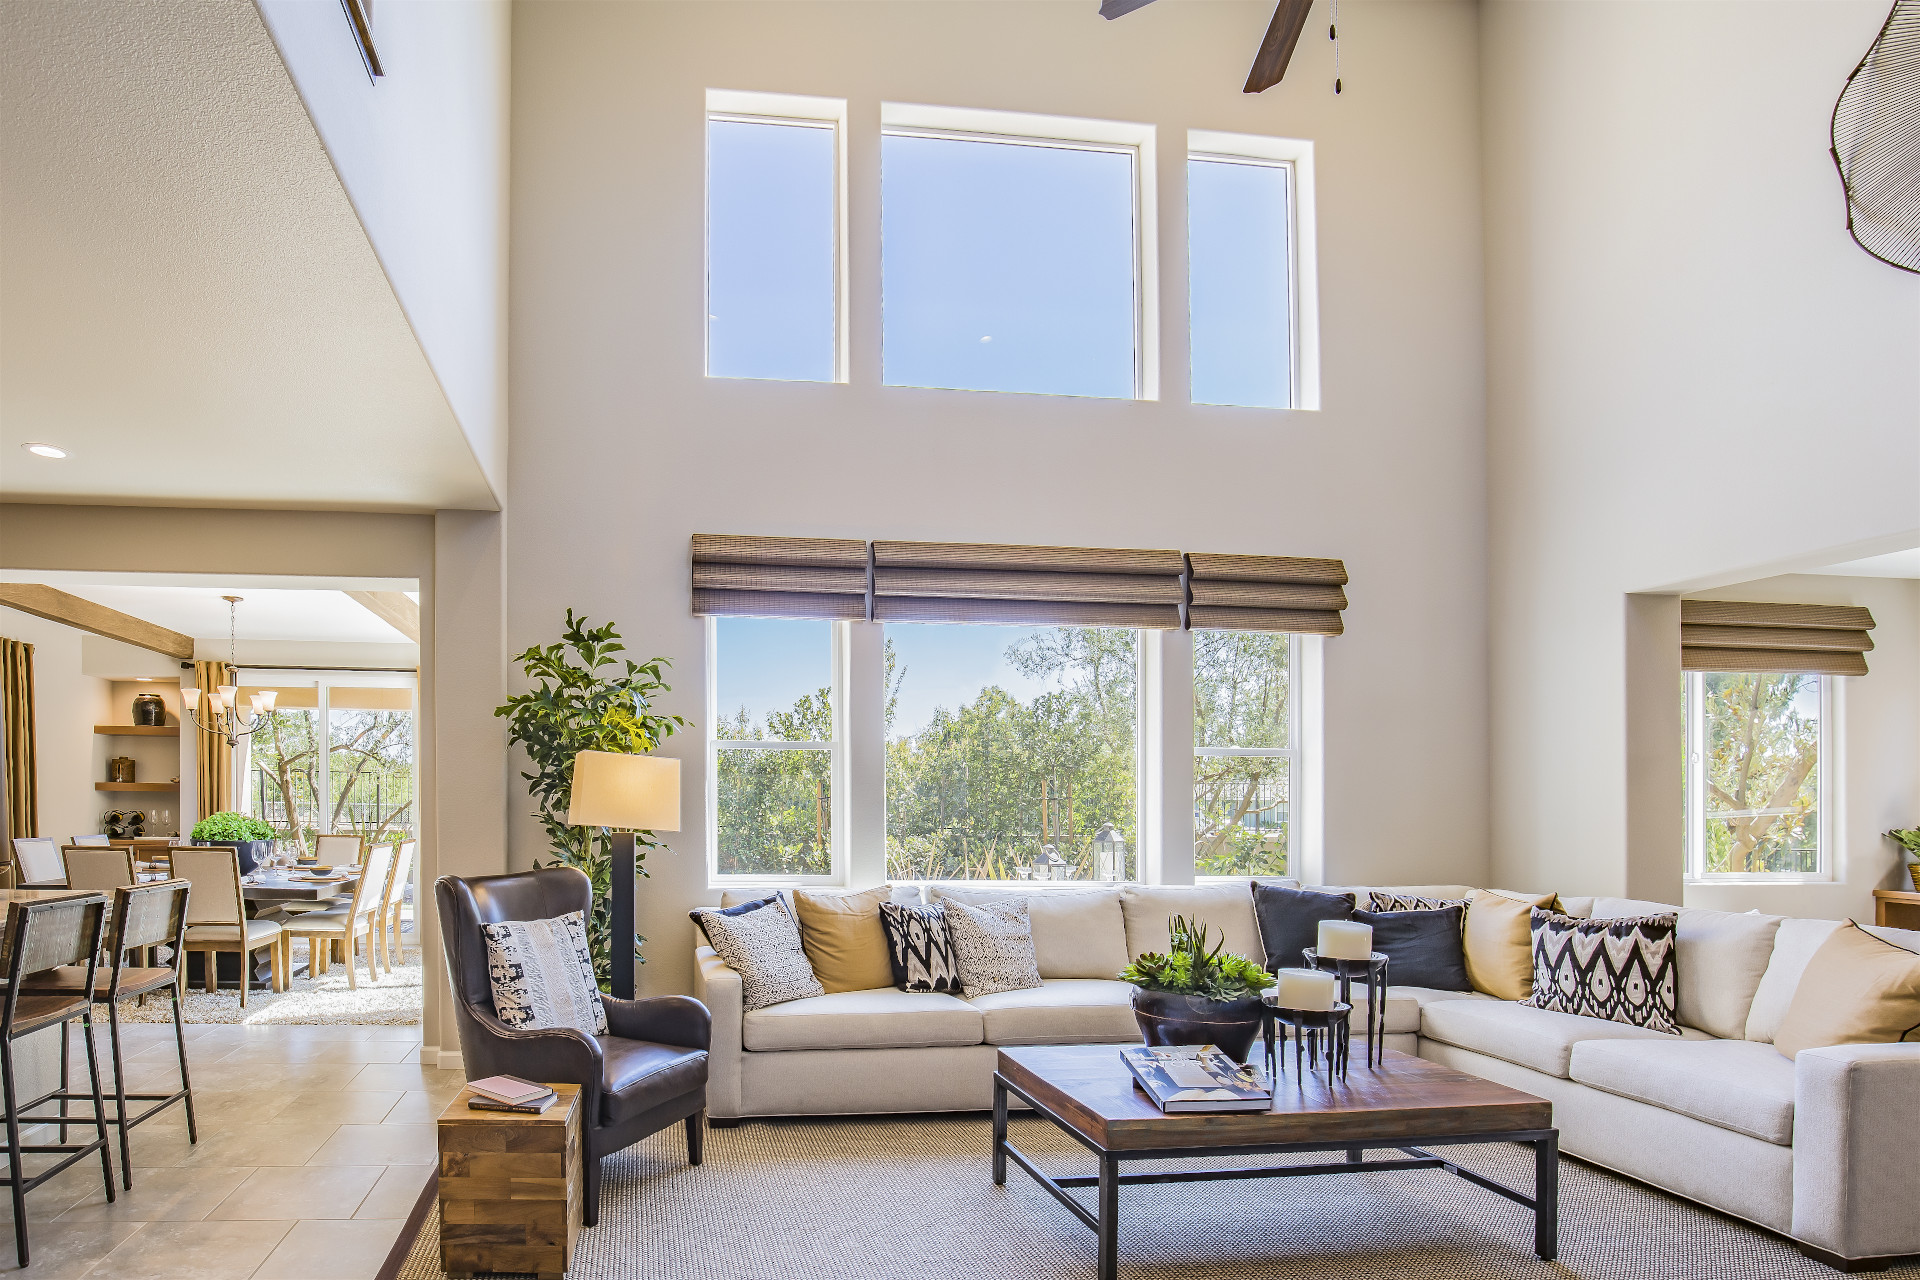 Arizona Window and Door in Scottsdale and Tucson showing large living room with windows